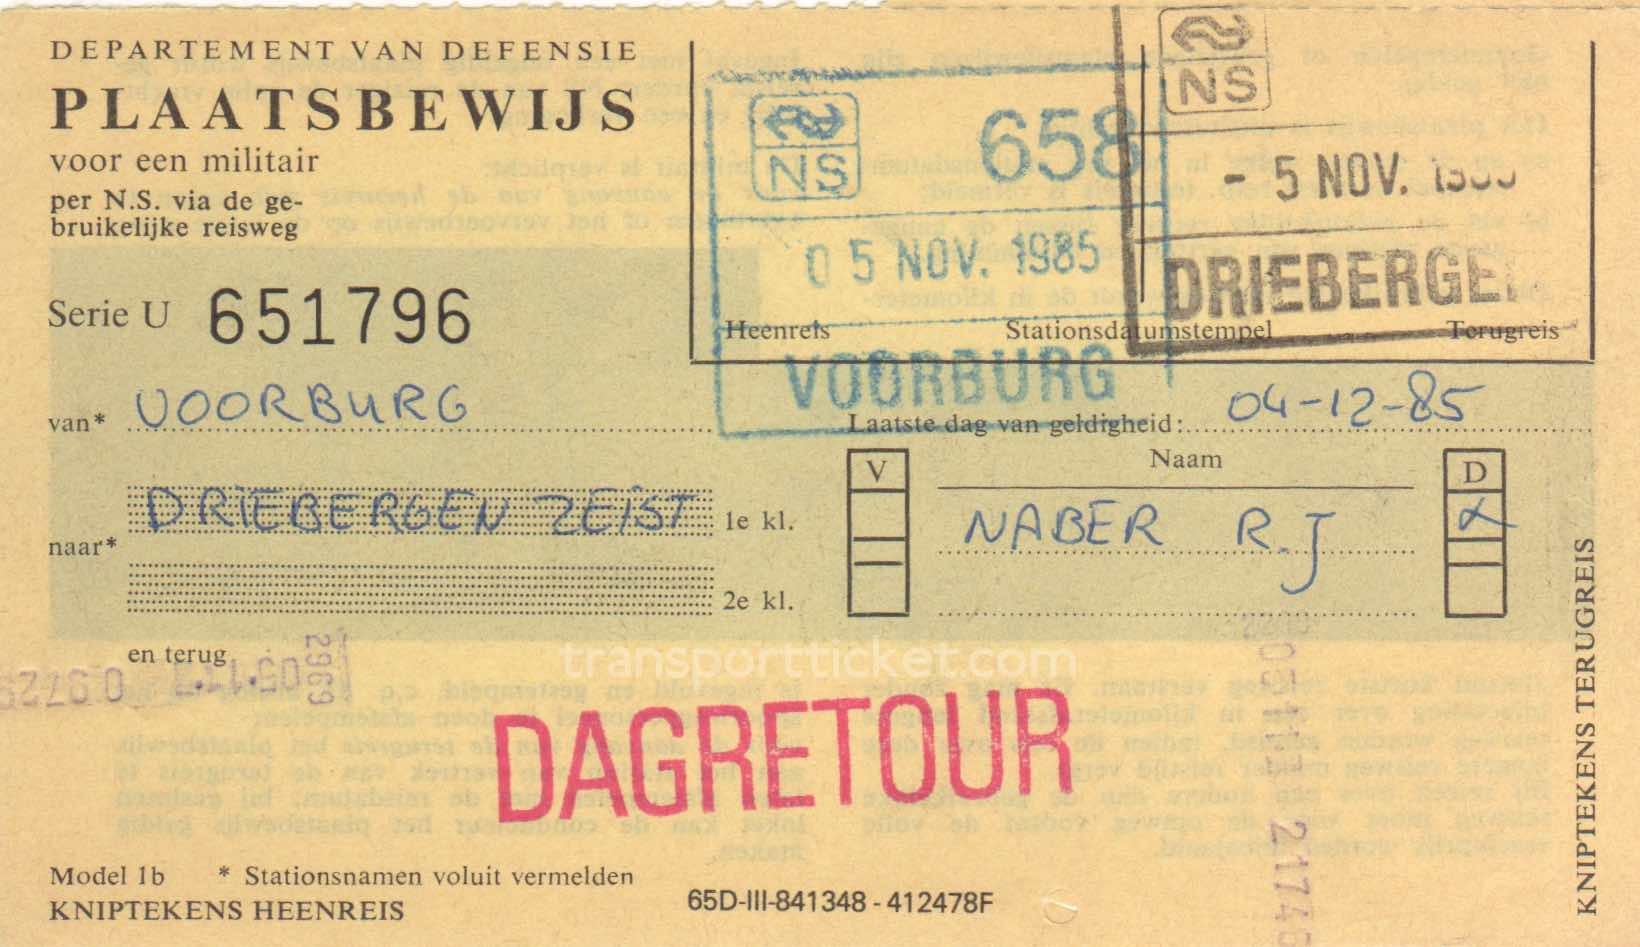 transport ticket issued by Dutch Department of Defense (1985)